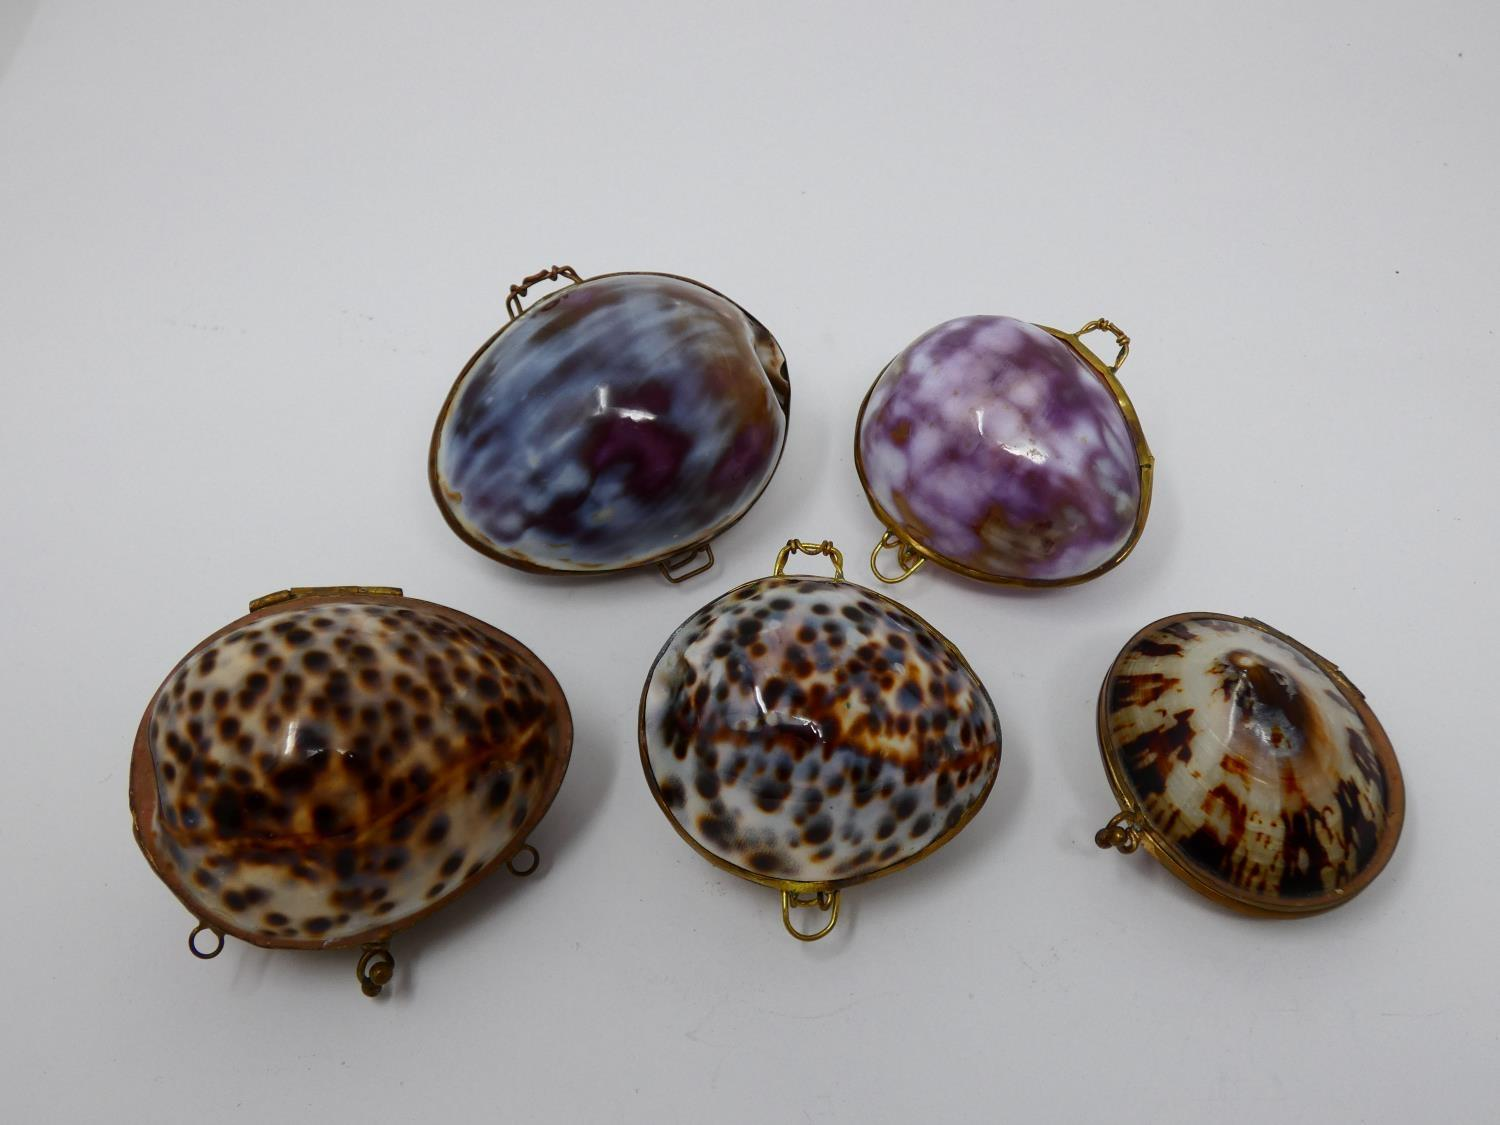 A collection of hinged sea shell trinket boxes. Four made from polished cowrie shells and one made